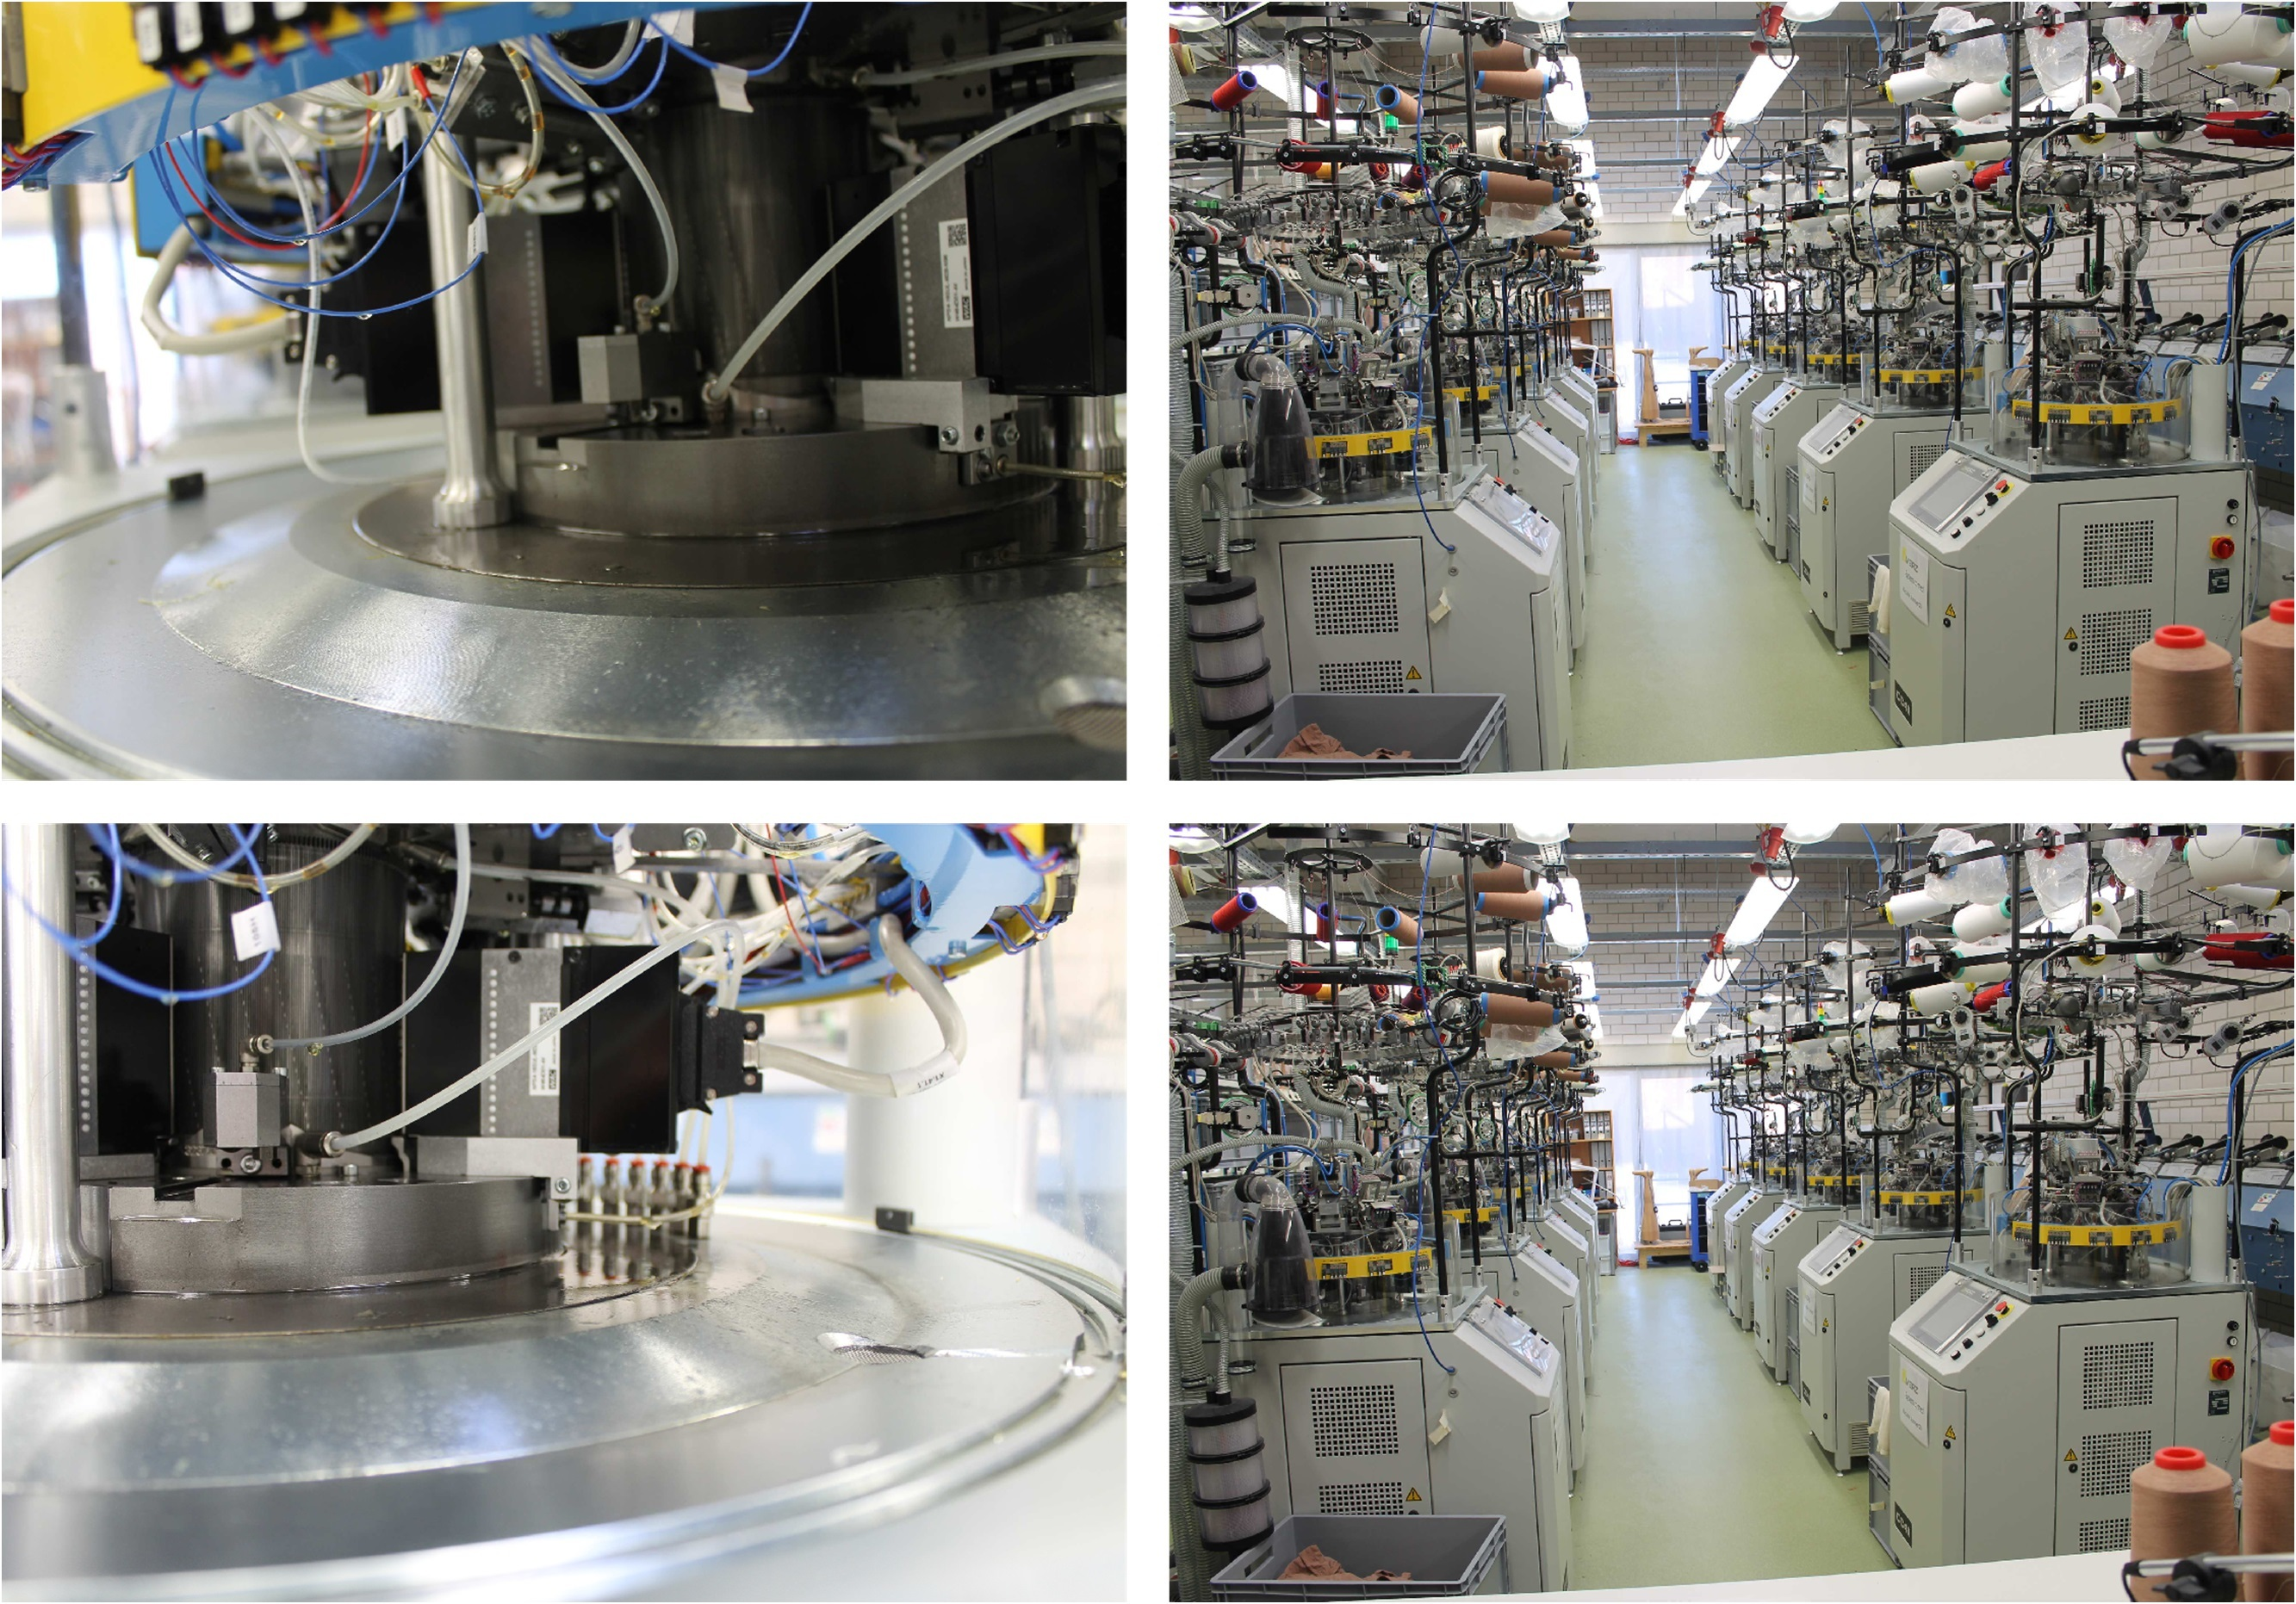 MERZ CC4 II 2016 Brand new Circular Knitting Machines for Medical Compression Stockings